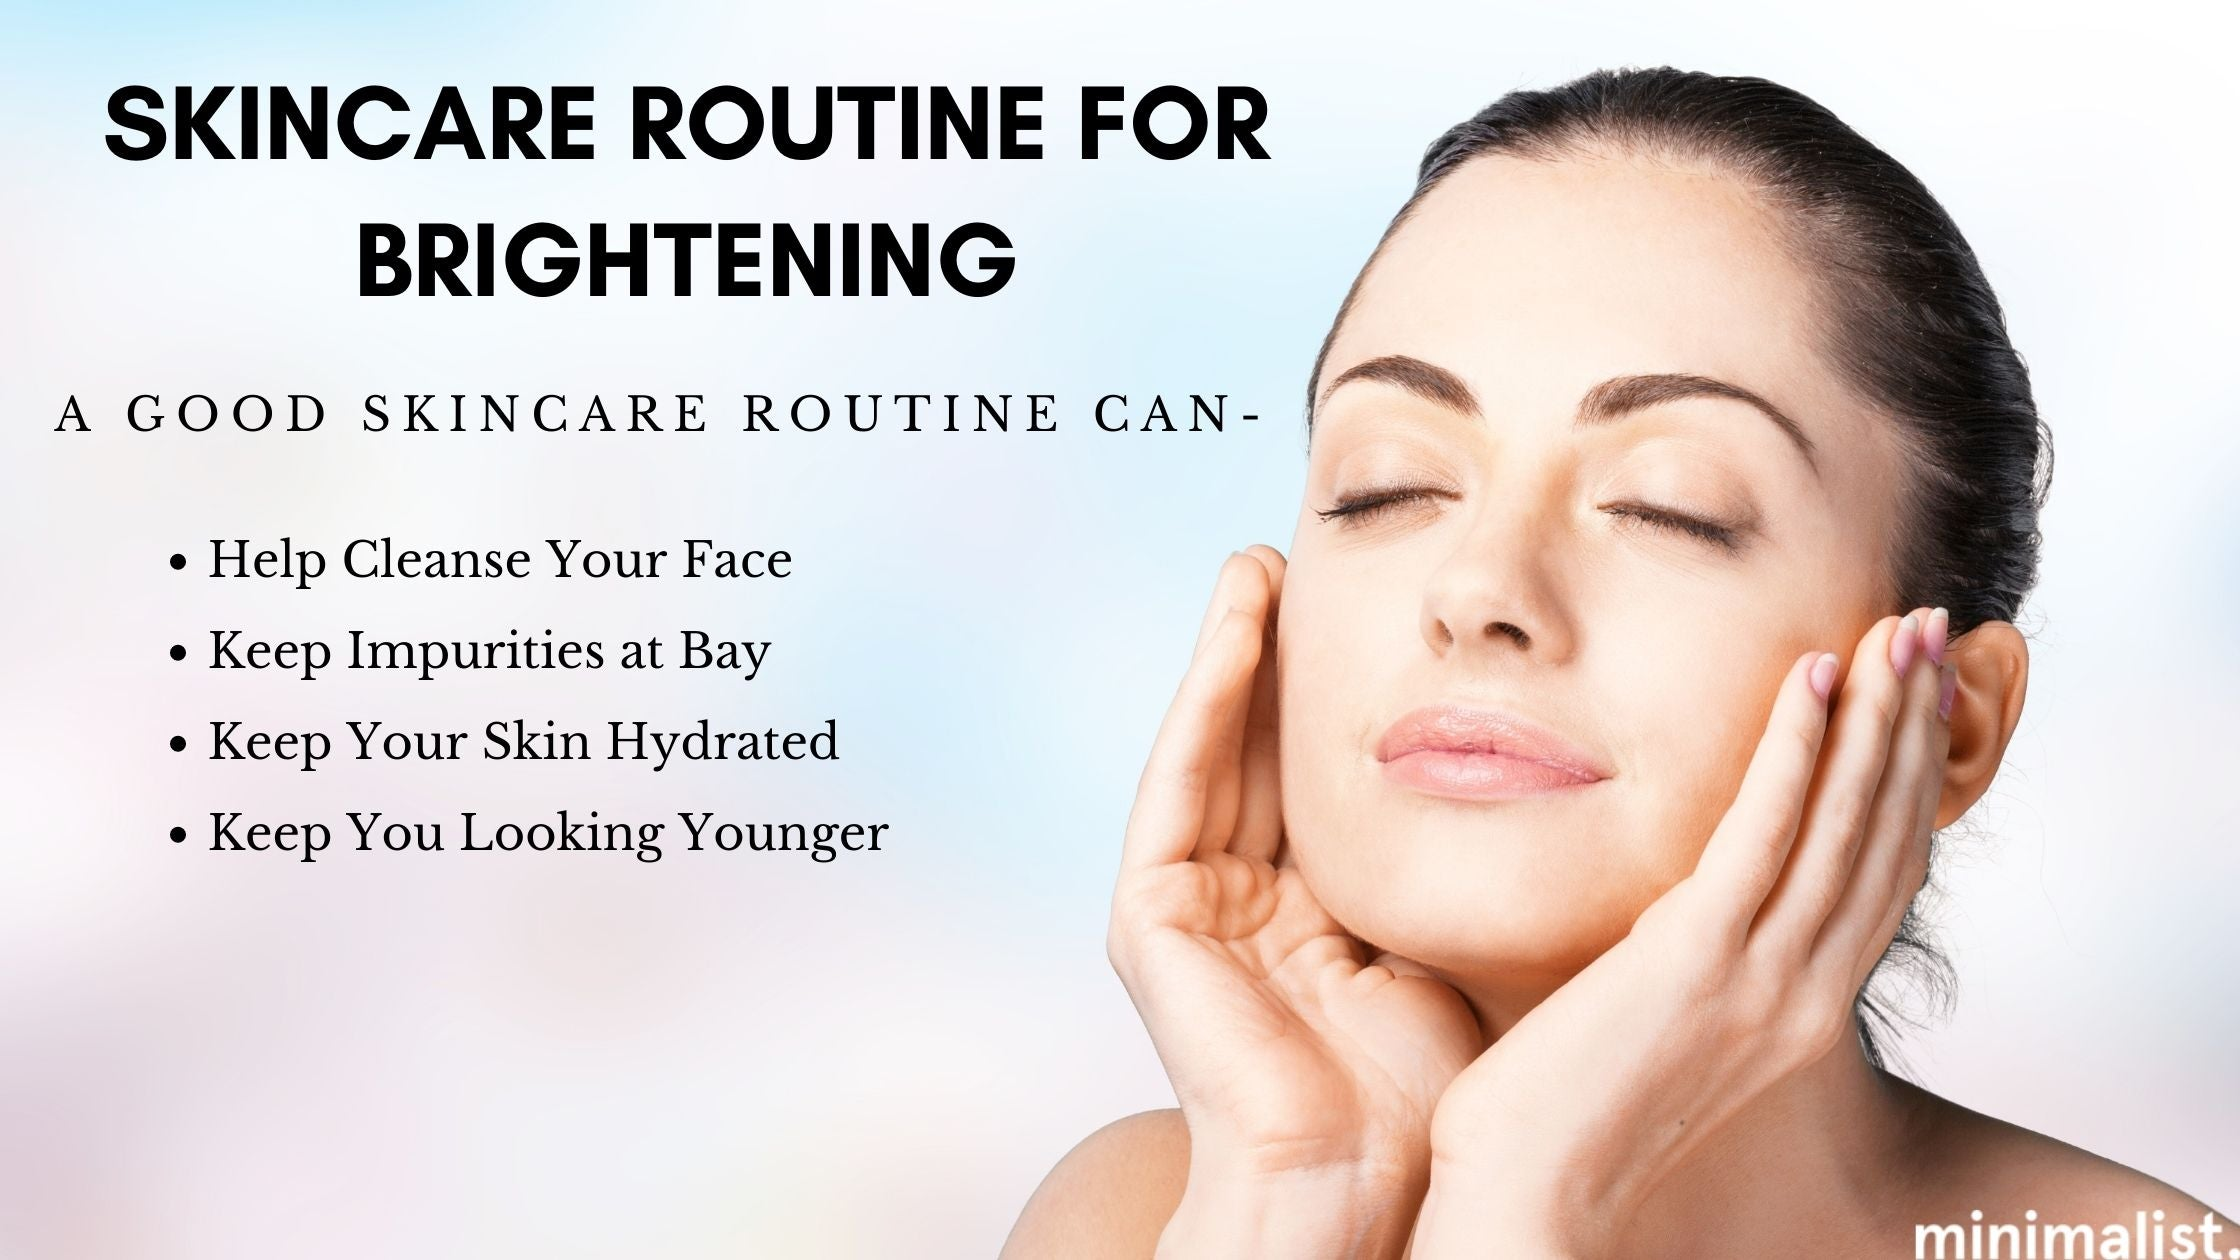 You need an effective skincare routine